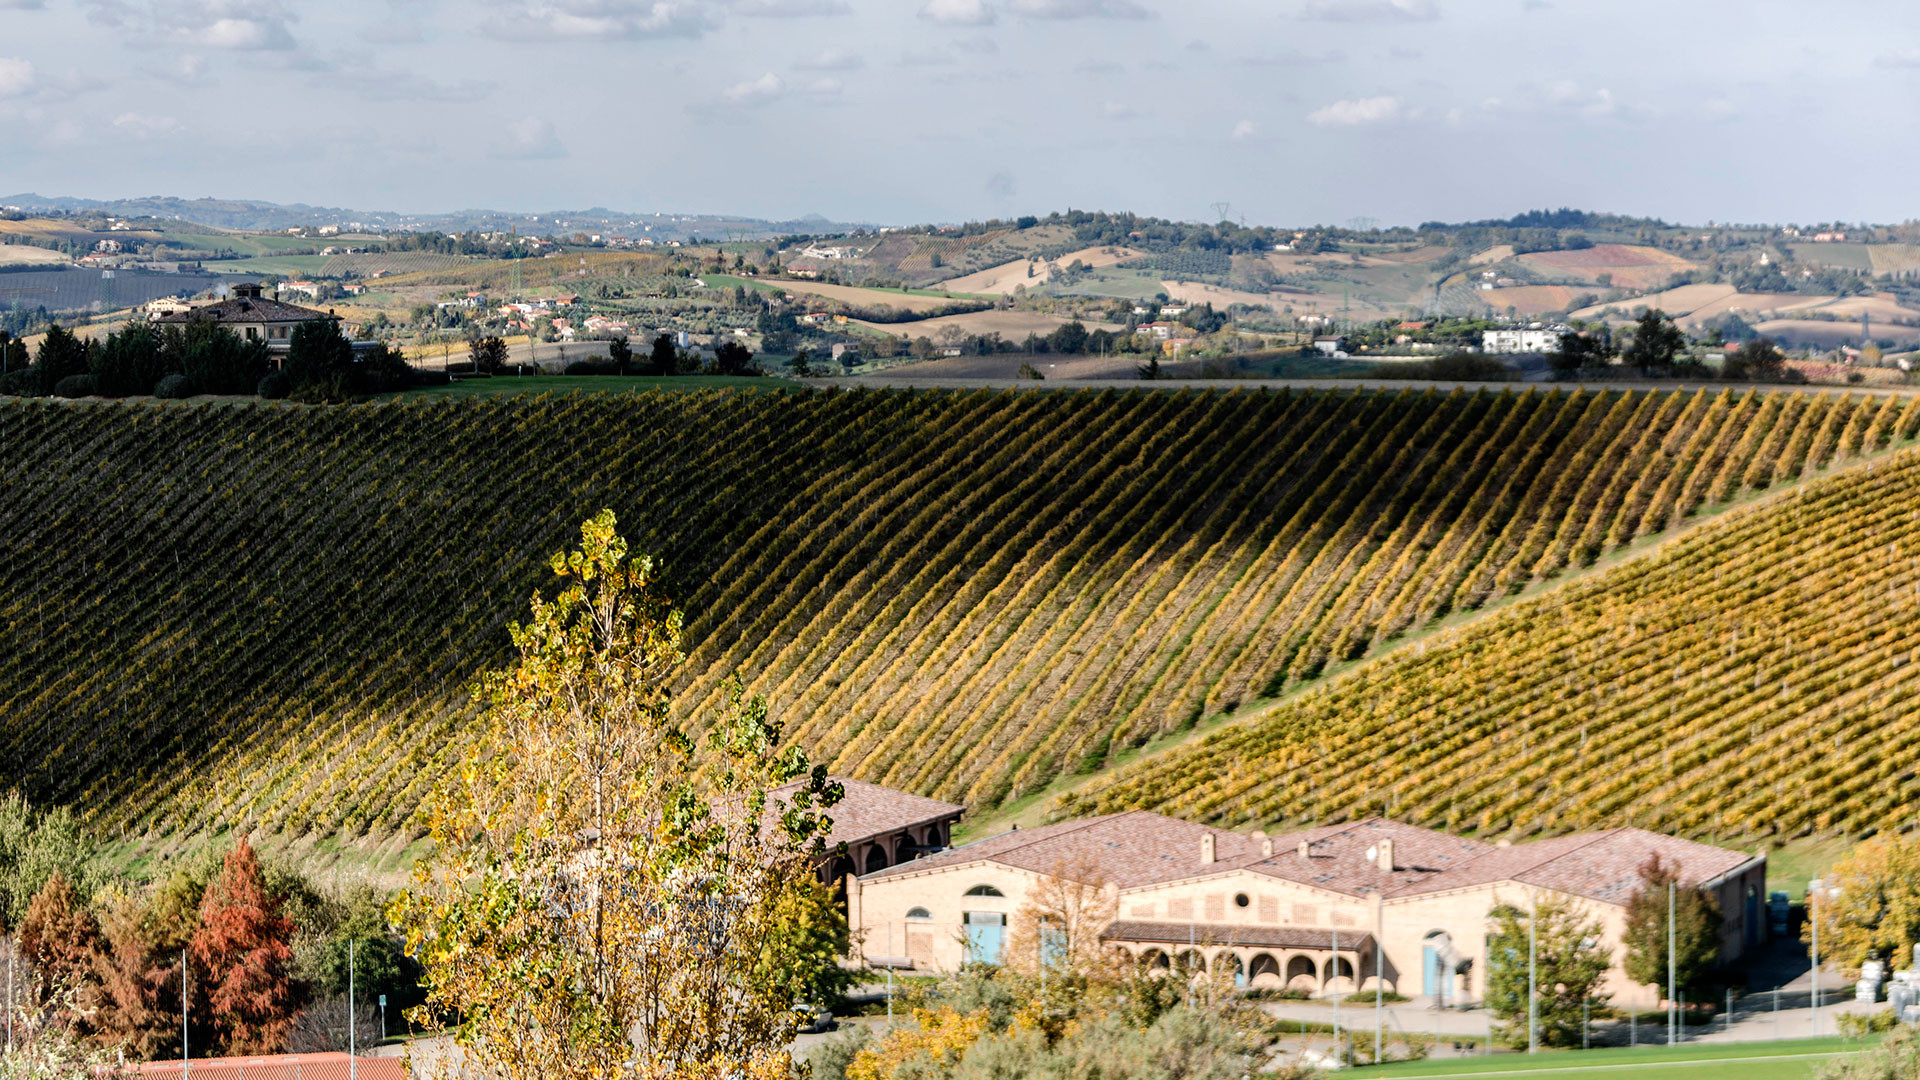 San Patrignano's vineyards